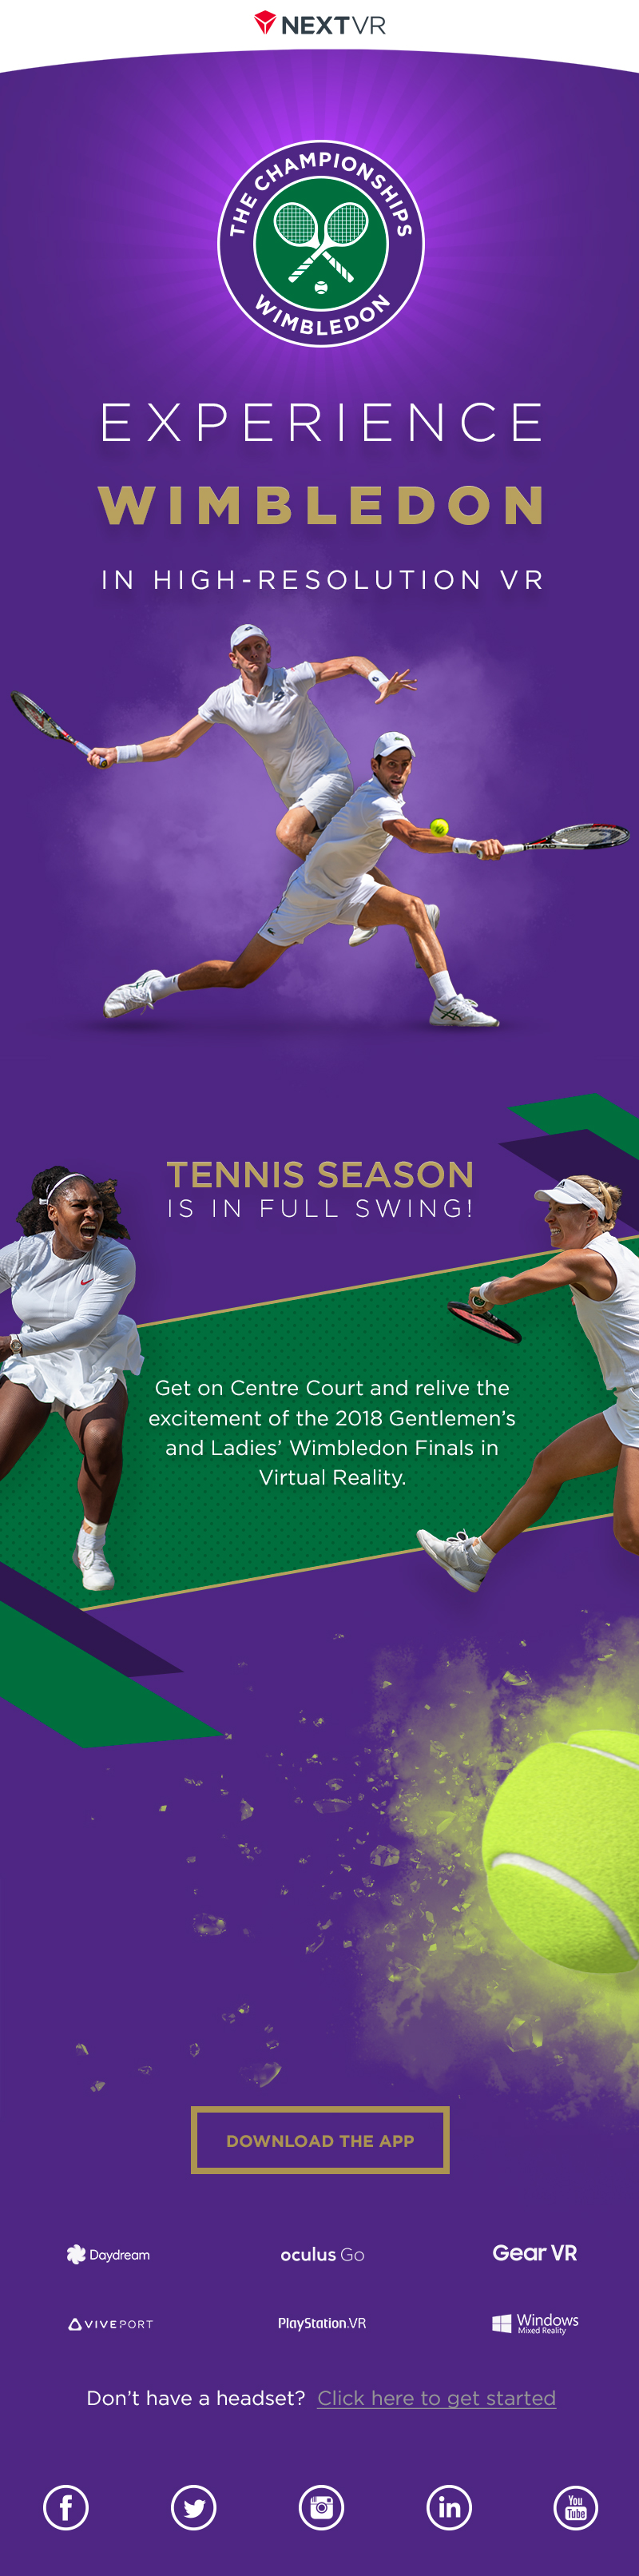 Email Marketing Design for Wimbledon Tennis in Virtual Reality